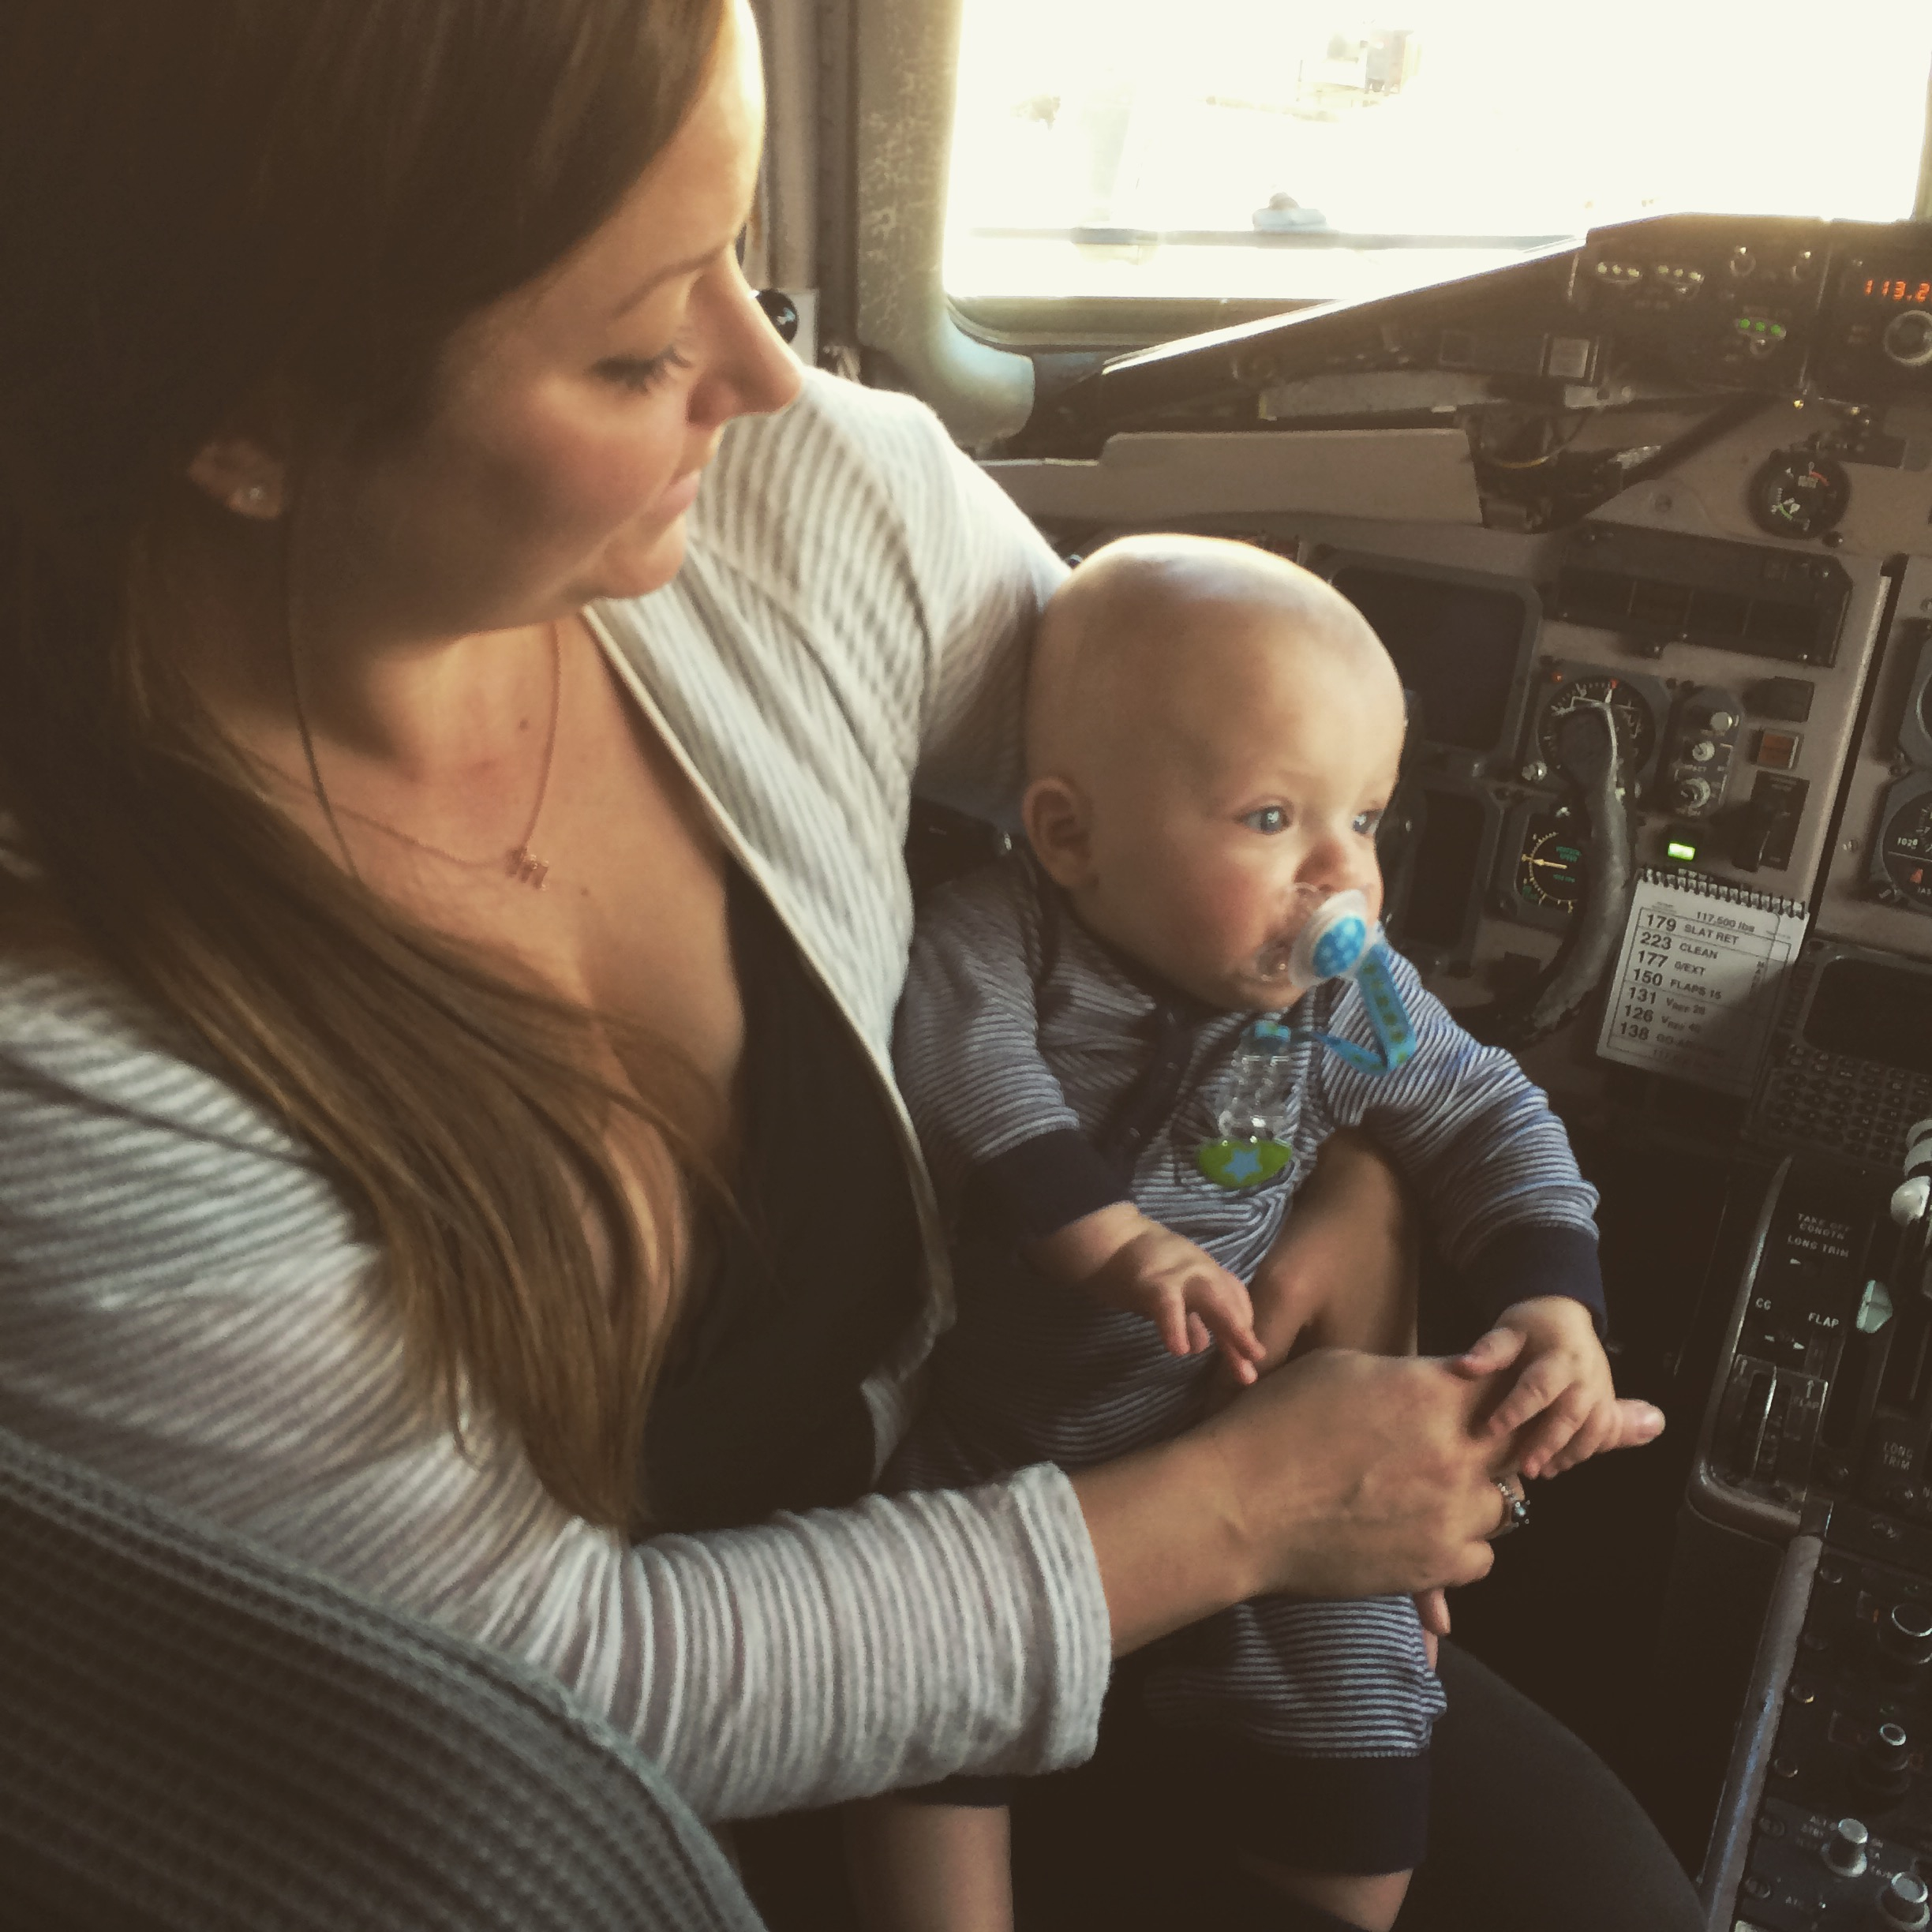 meeting the pilot in the cockpit on his 1st flight...